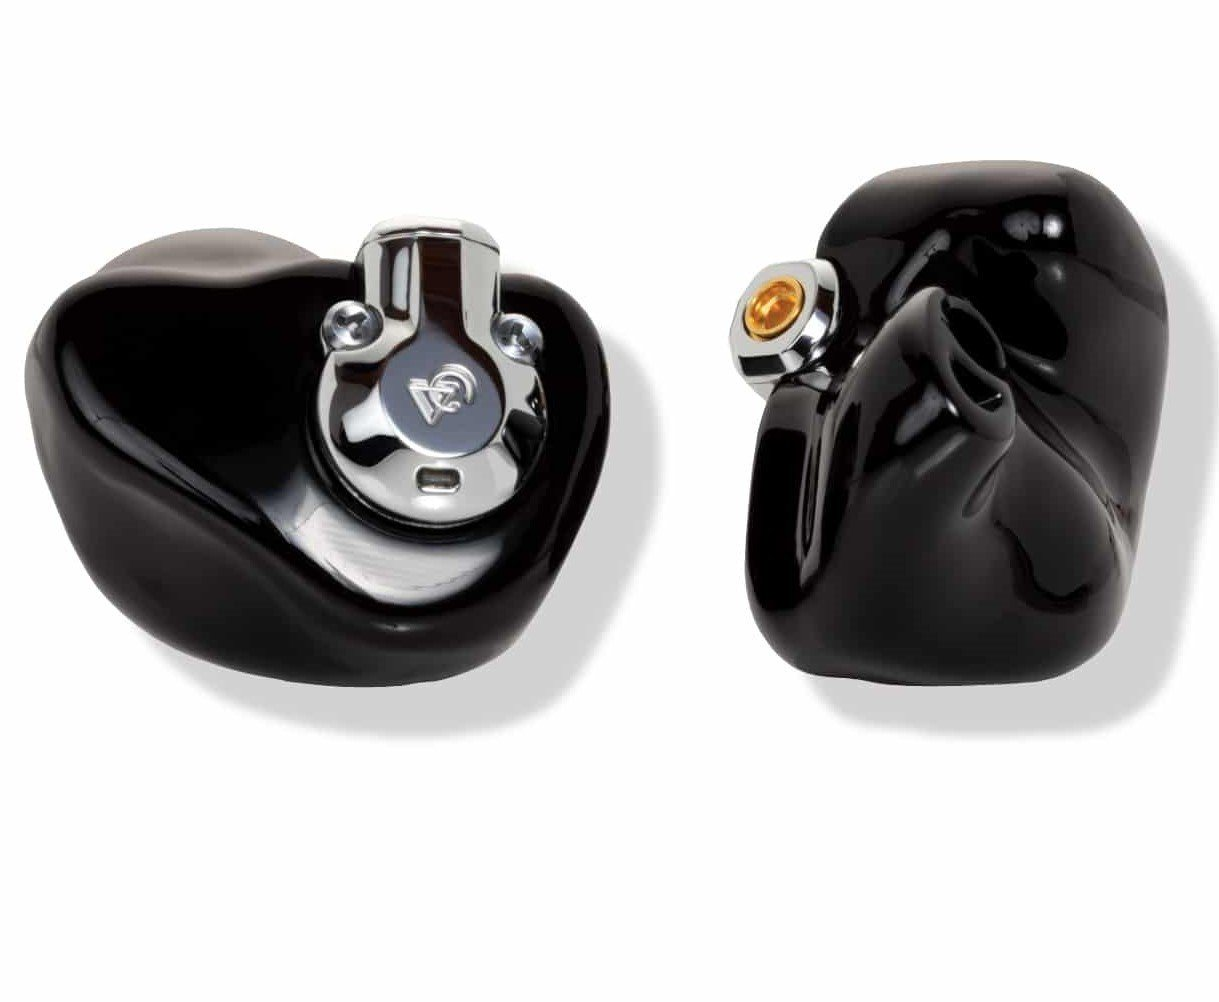 Campfire Audio Equinox custom fit earphones